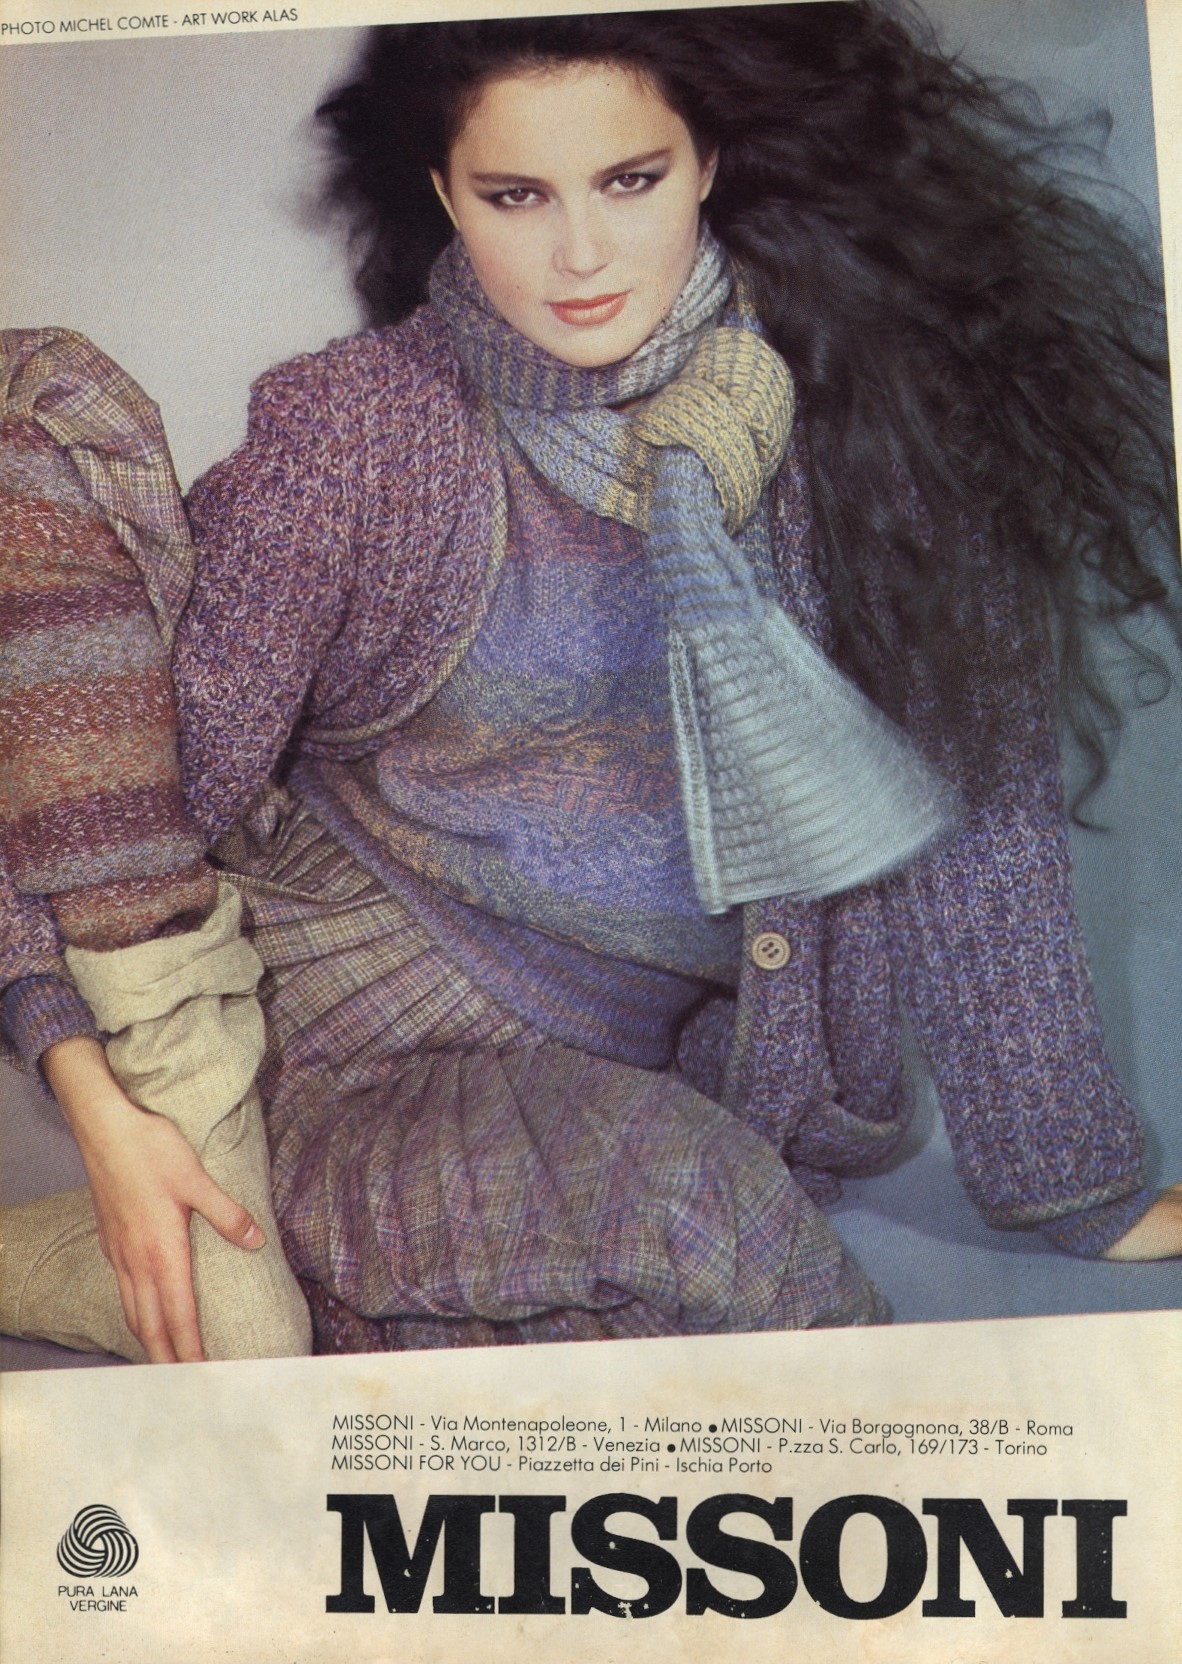 MISSONI AD CAMPAIGN | PHOTOGRAPHY MICHEL COMTE | COSMOPOLITAN ITALY | OCTOBER 1981